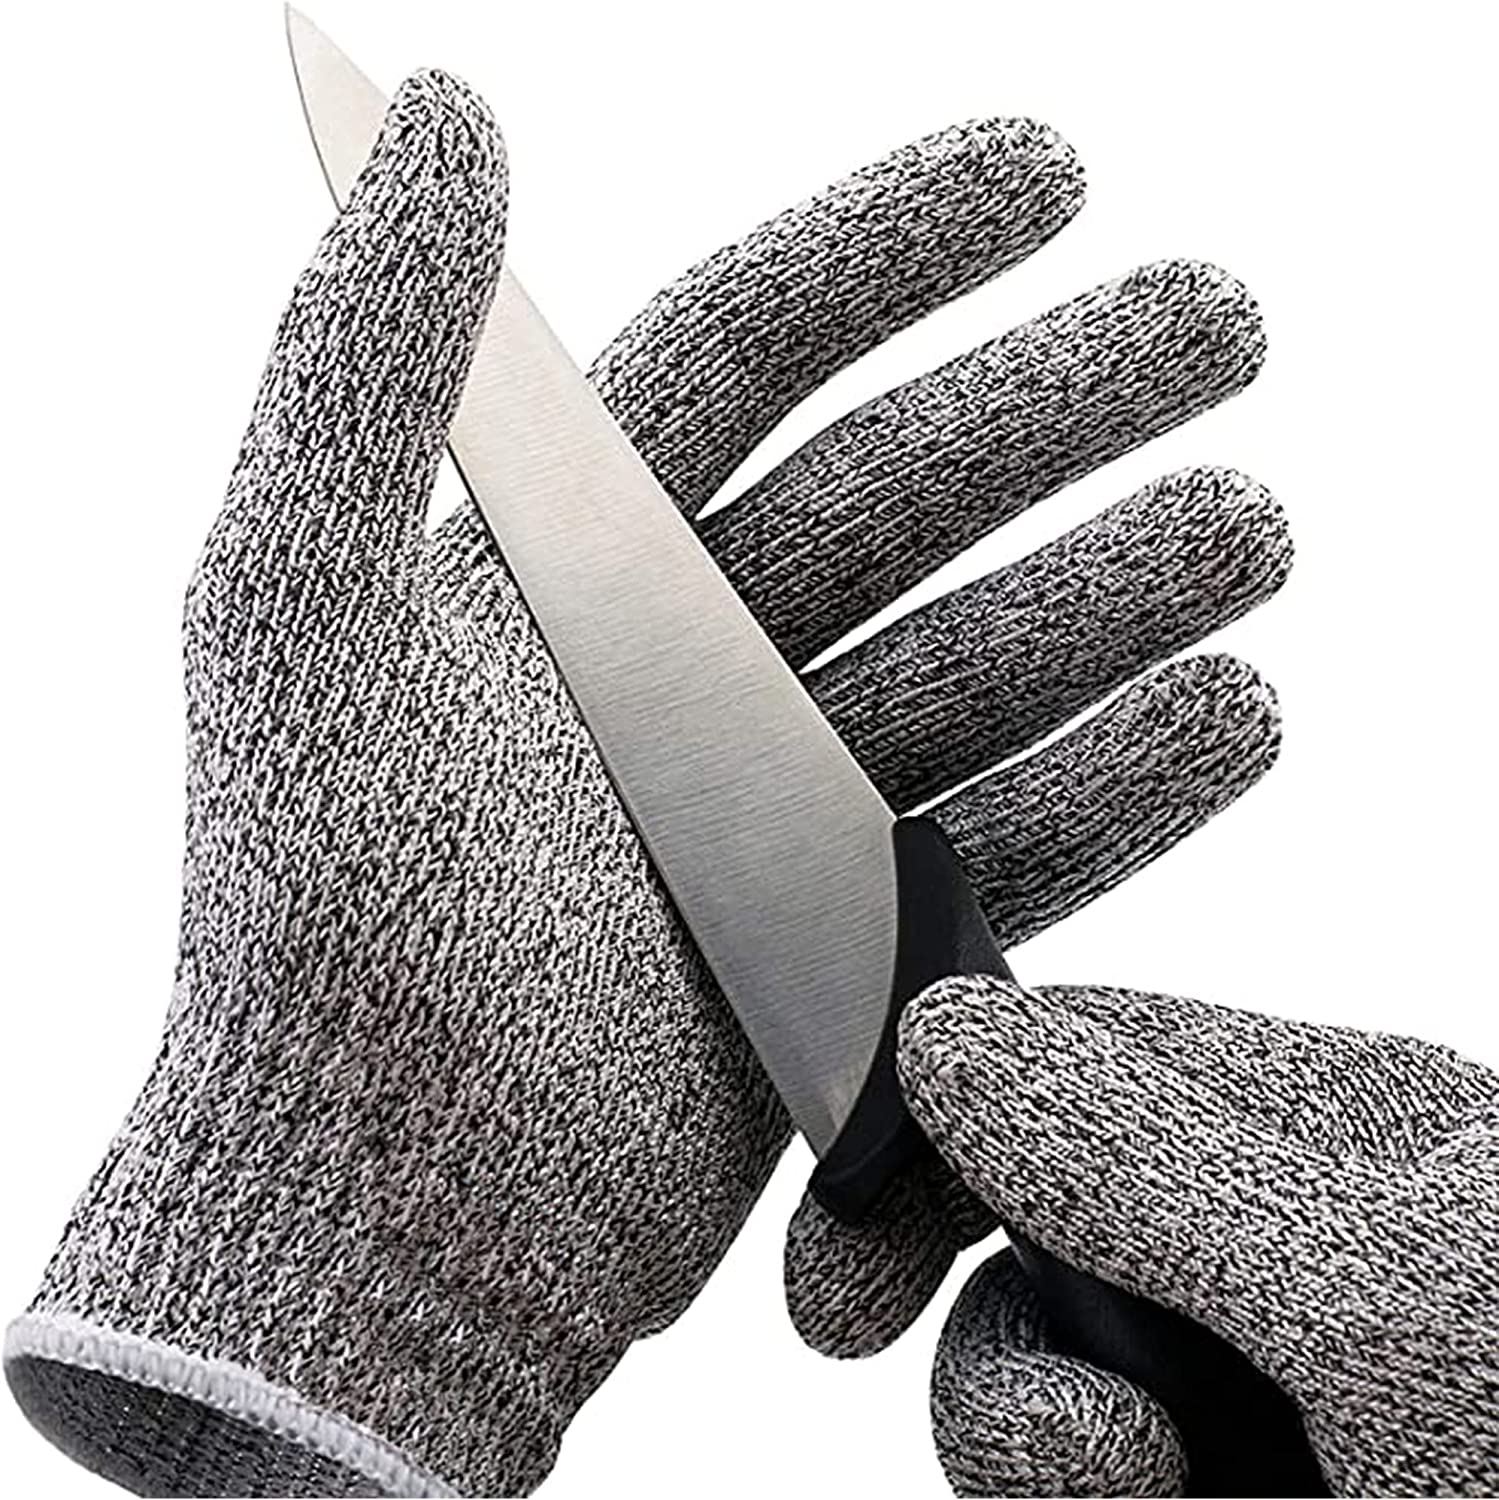 ShengYu-Z Buy 1 Get 1 FREE,Food Grade Level 5 Cut Resistant Gloves, Safety Kitchen Cuts Gloves for Oyster Shucking, Fish Fillet Processing, Mandolin Slicing, Meat Cutting and Wood Carving.(Large-1 Pairs, Medium-1 Pairs)